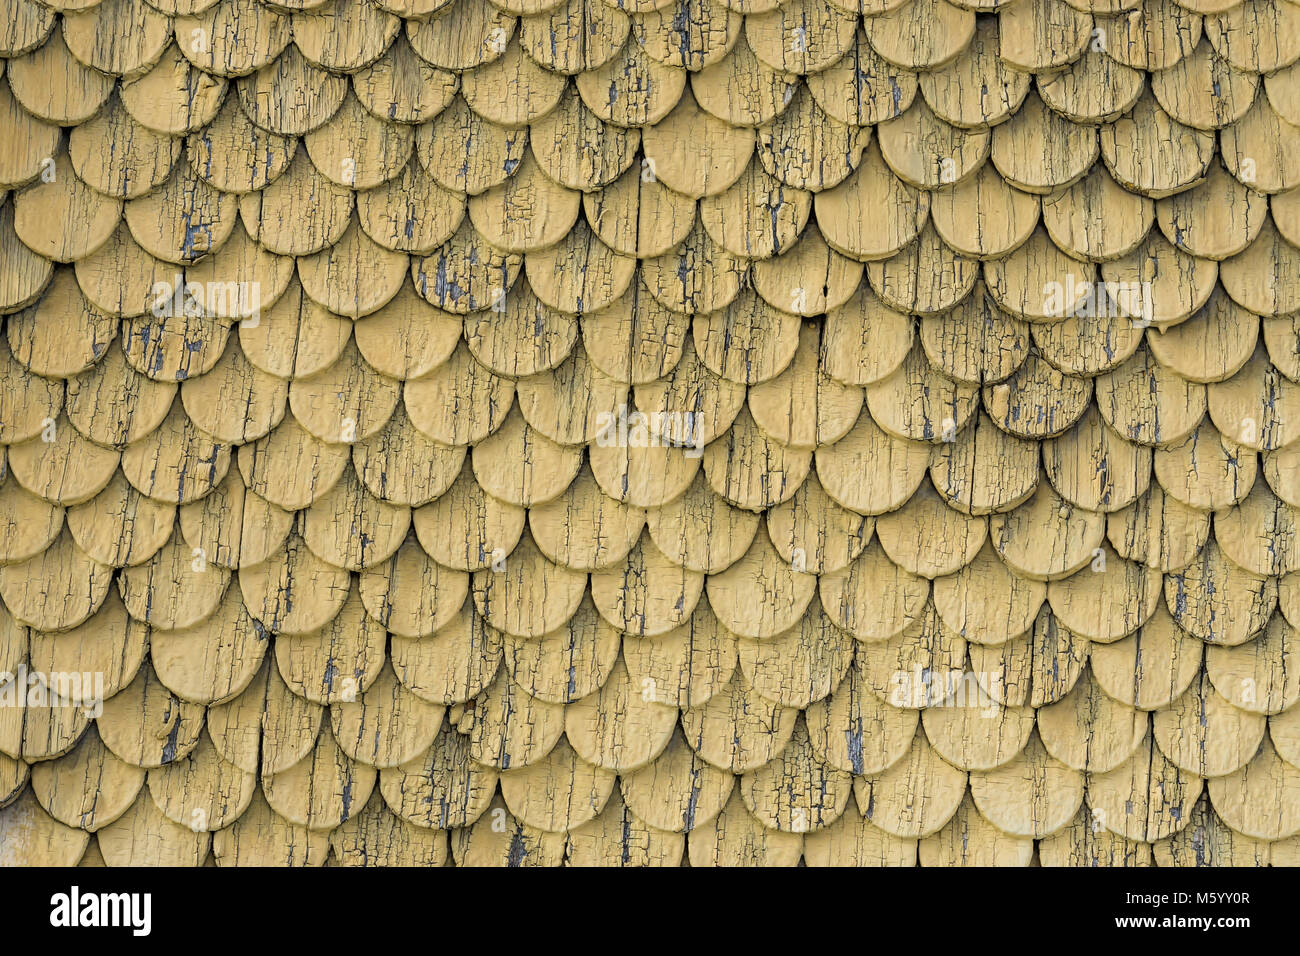 Old rustic wood tiling roof wall texture. Yellow weathered background. - Stock Image